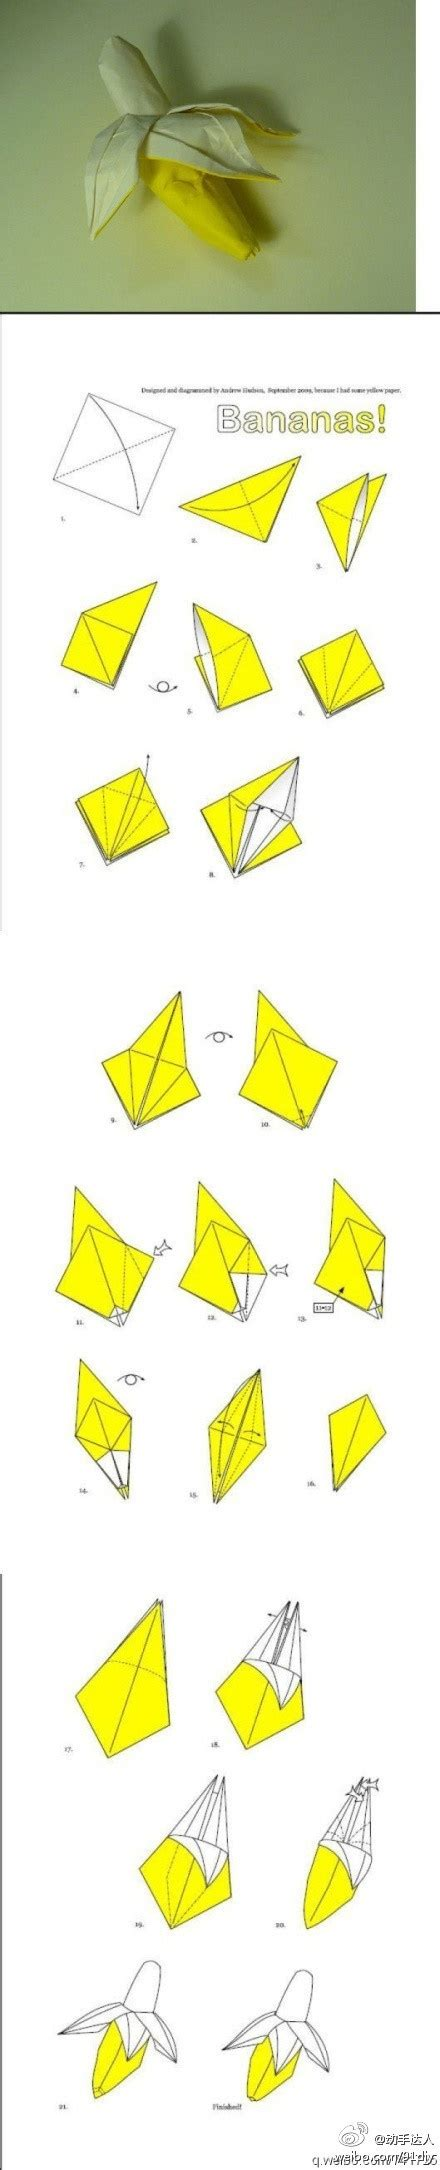 origami banana origami 3d banana origami and crafts